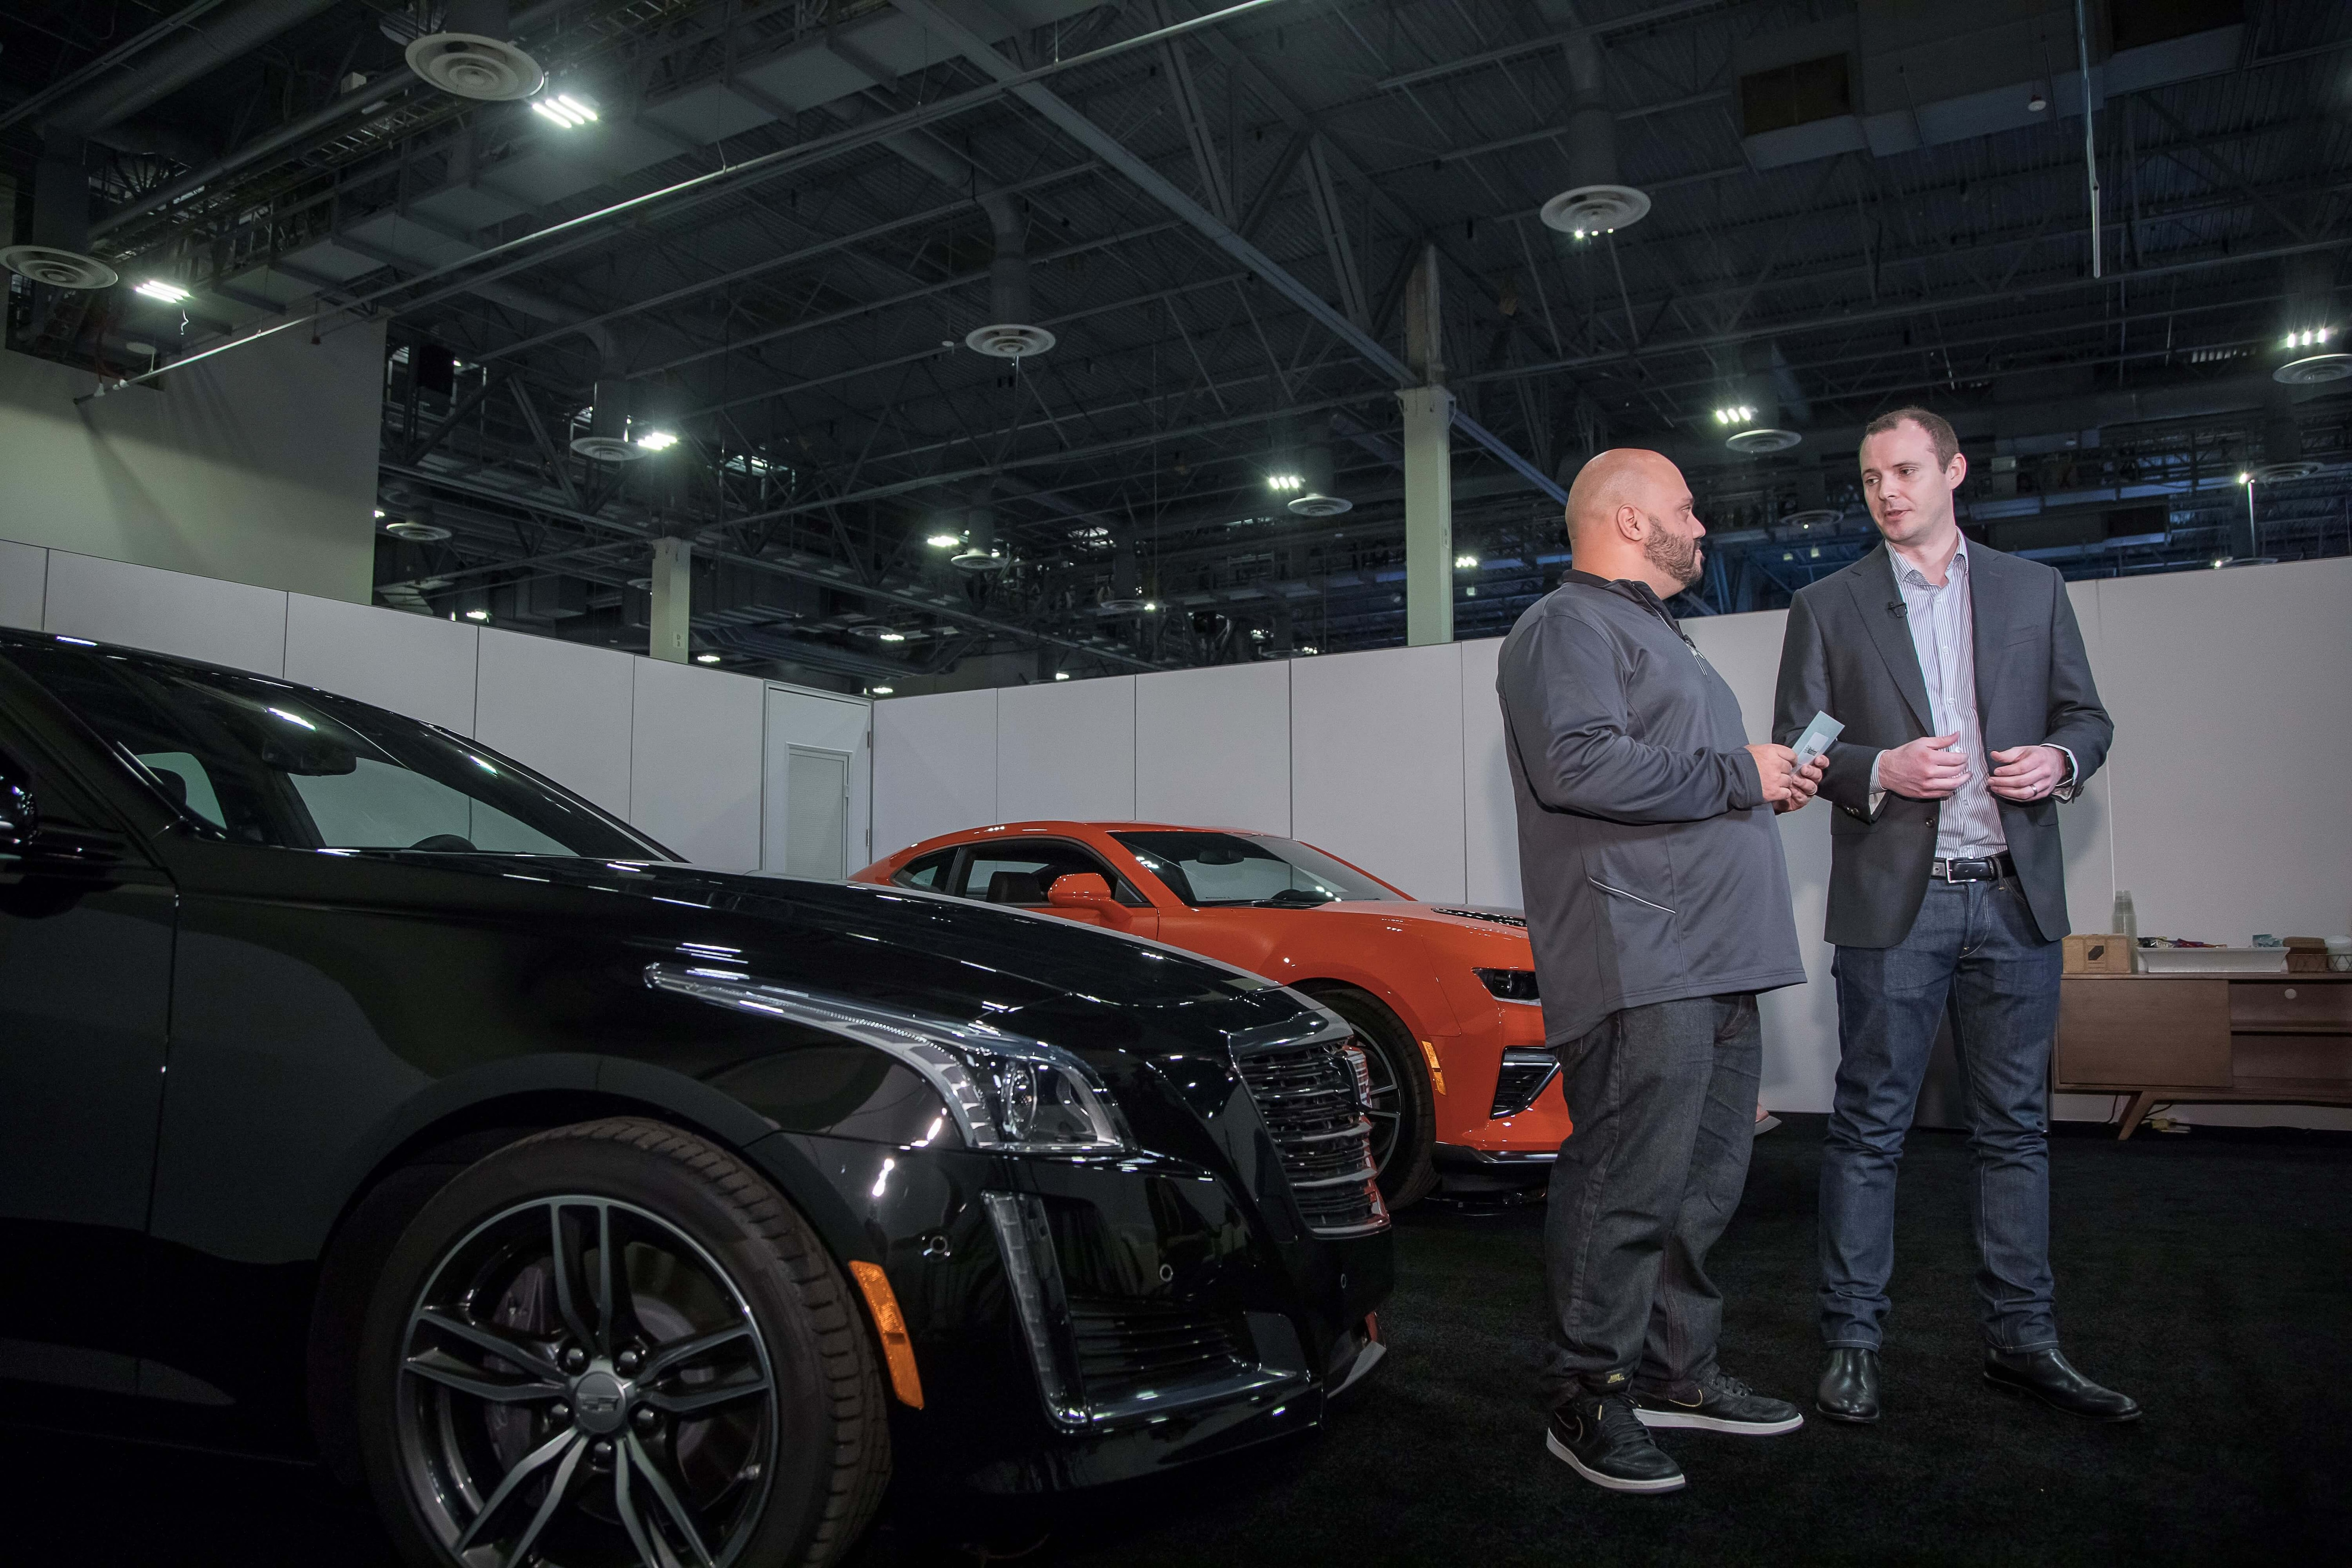 andru-edwards-john-mcfarland-general-motors-interview-ces-2019